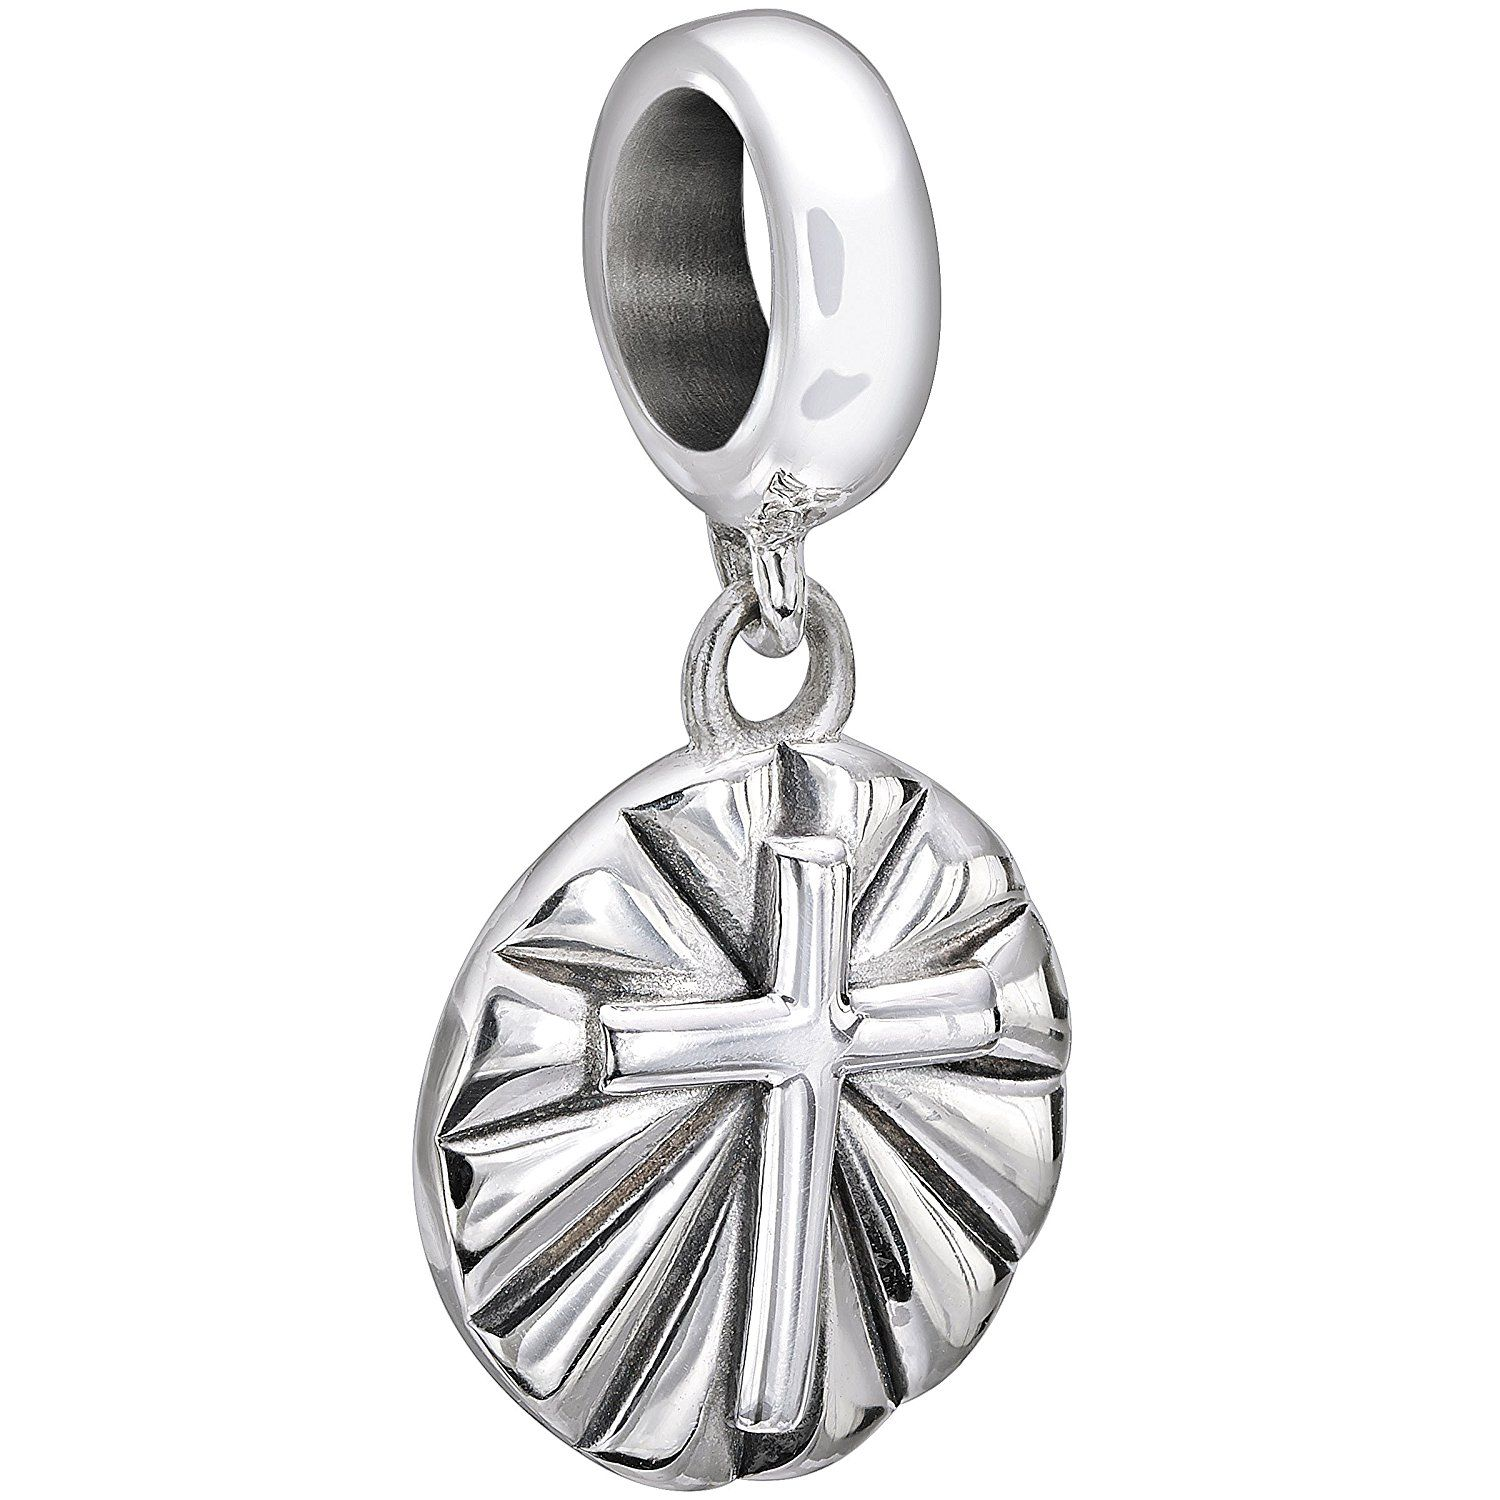 Authentic Chamilia Sterling Silver Soul Charm Faith 2010-3148 * Be sure to check out this helpful article. #JewelryDesign